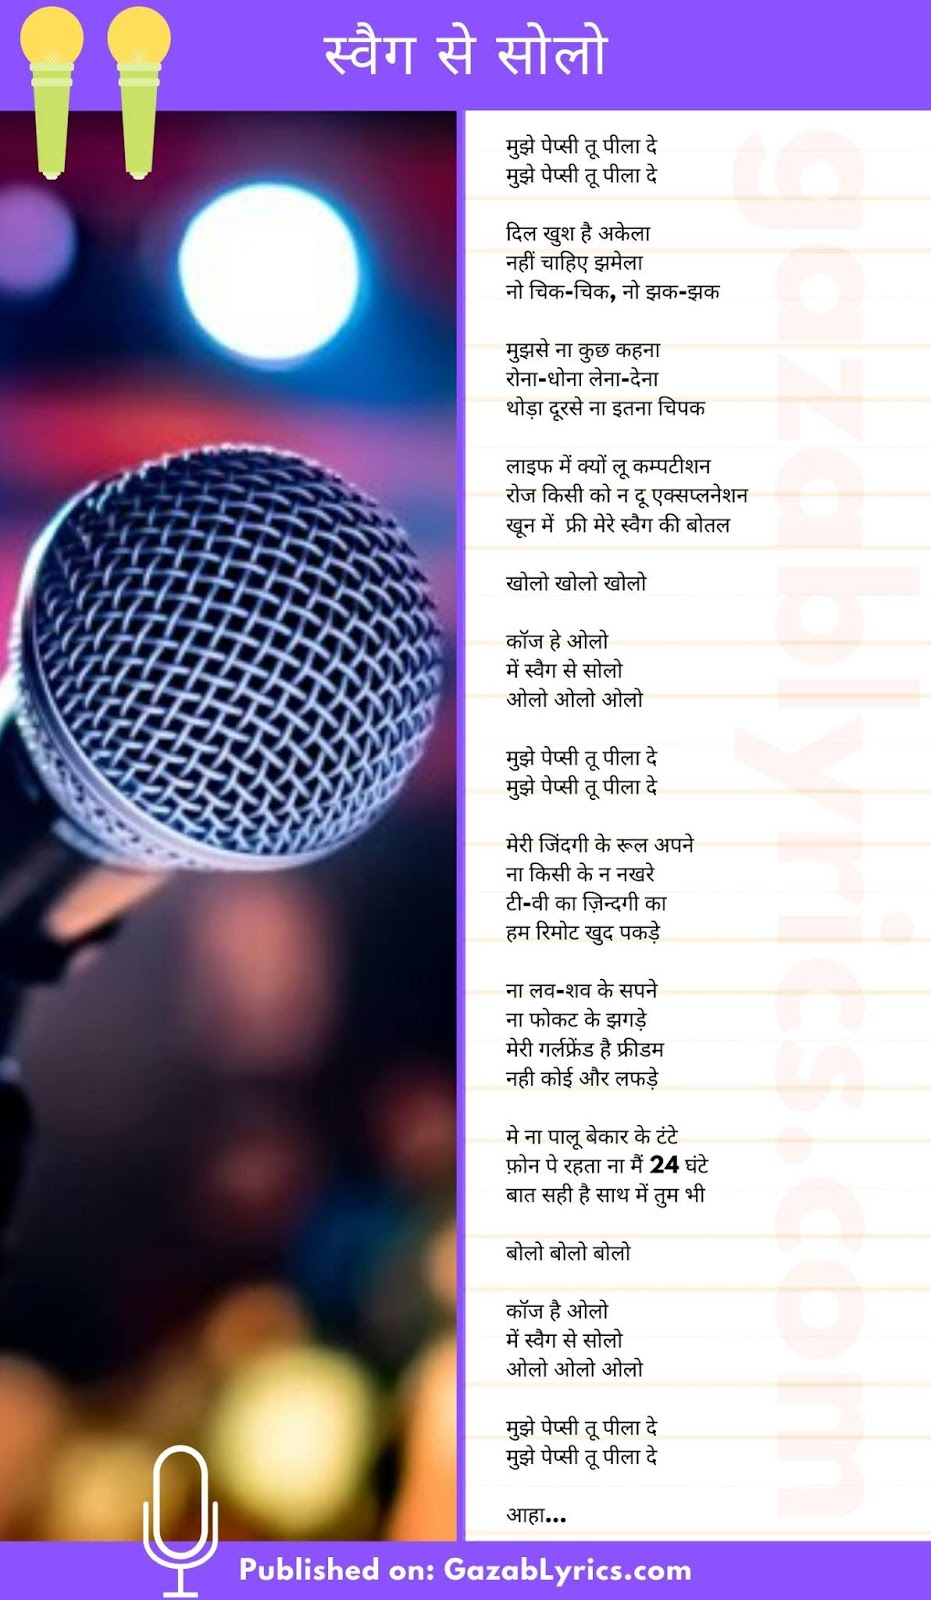 Swag Se Solo song lyrics image